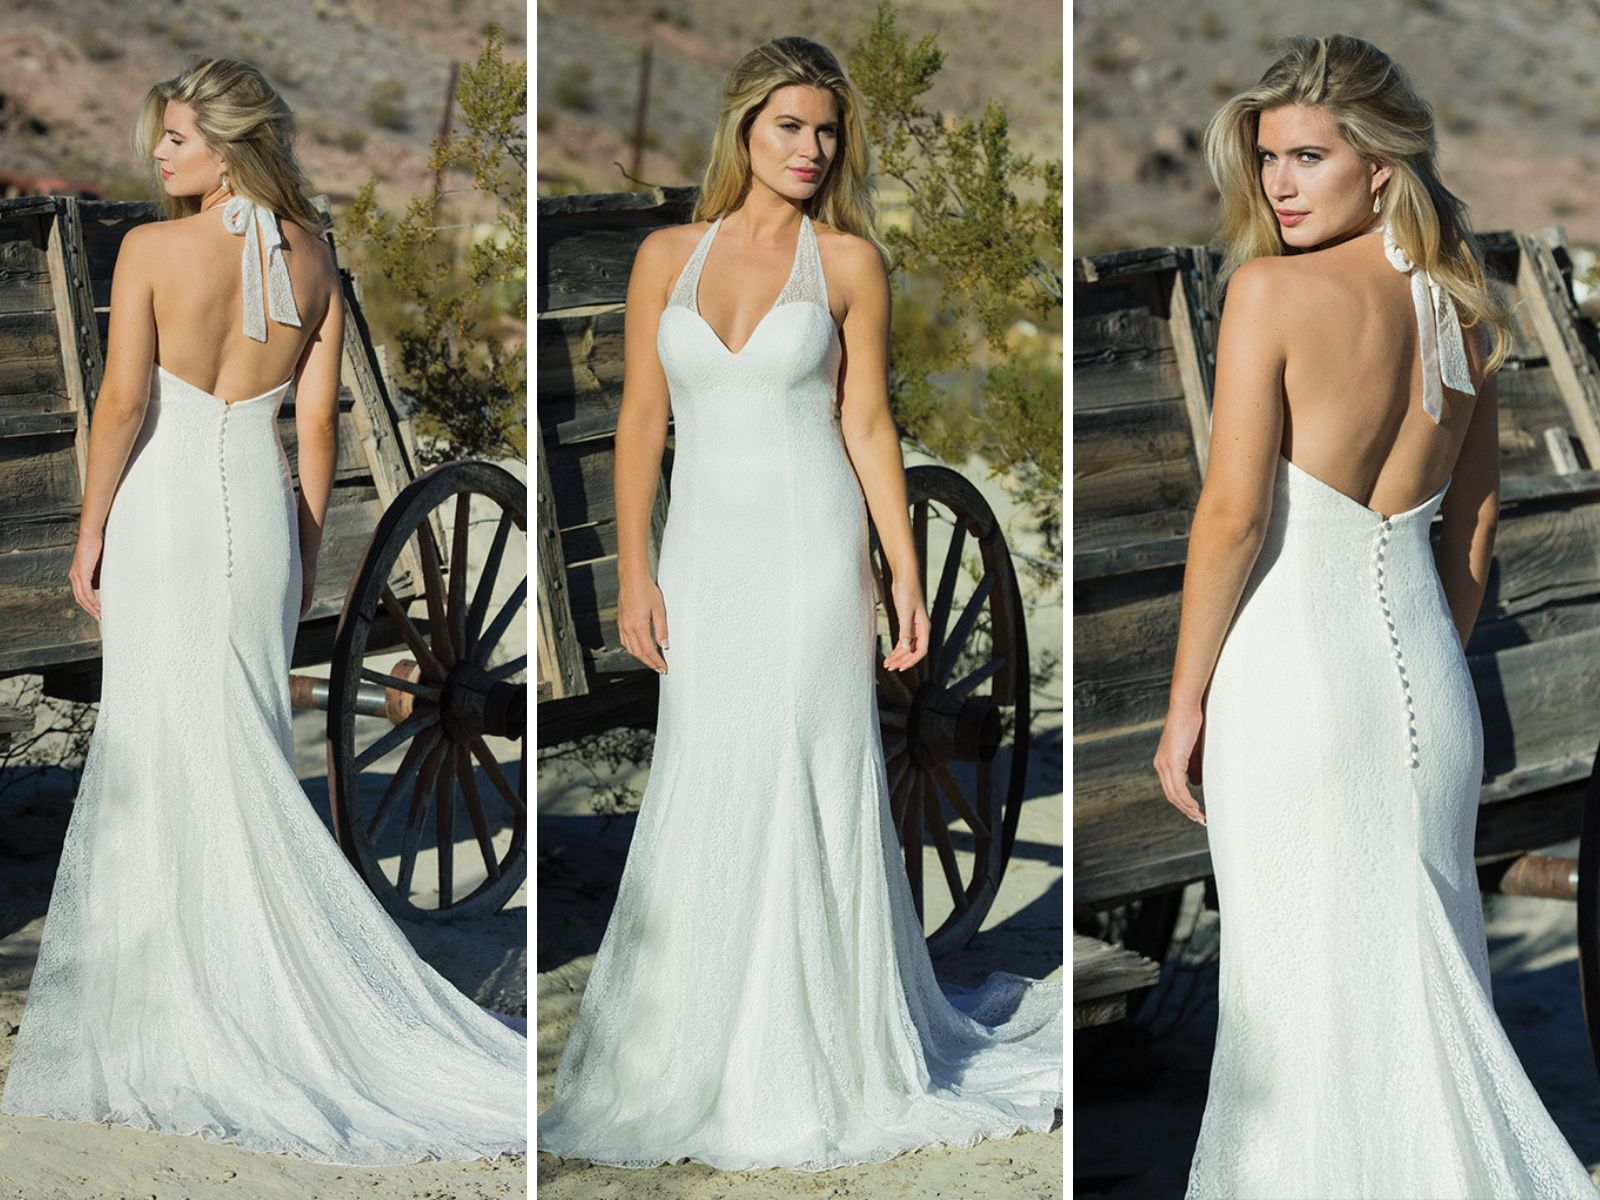 Willowherb wedding dress by Ivory and Co